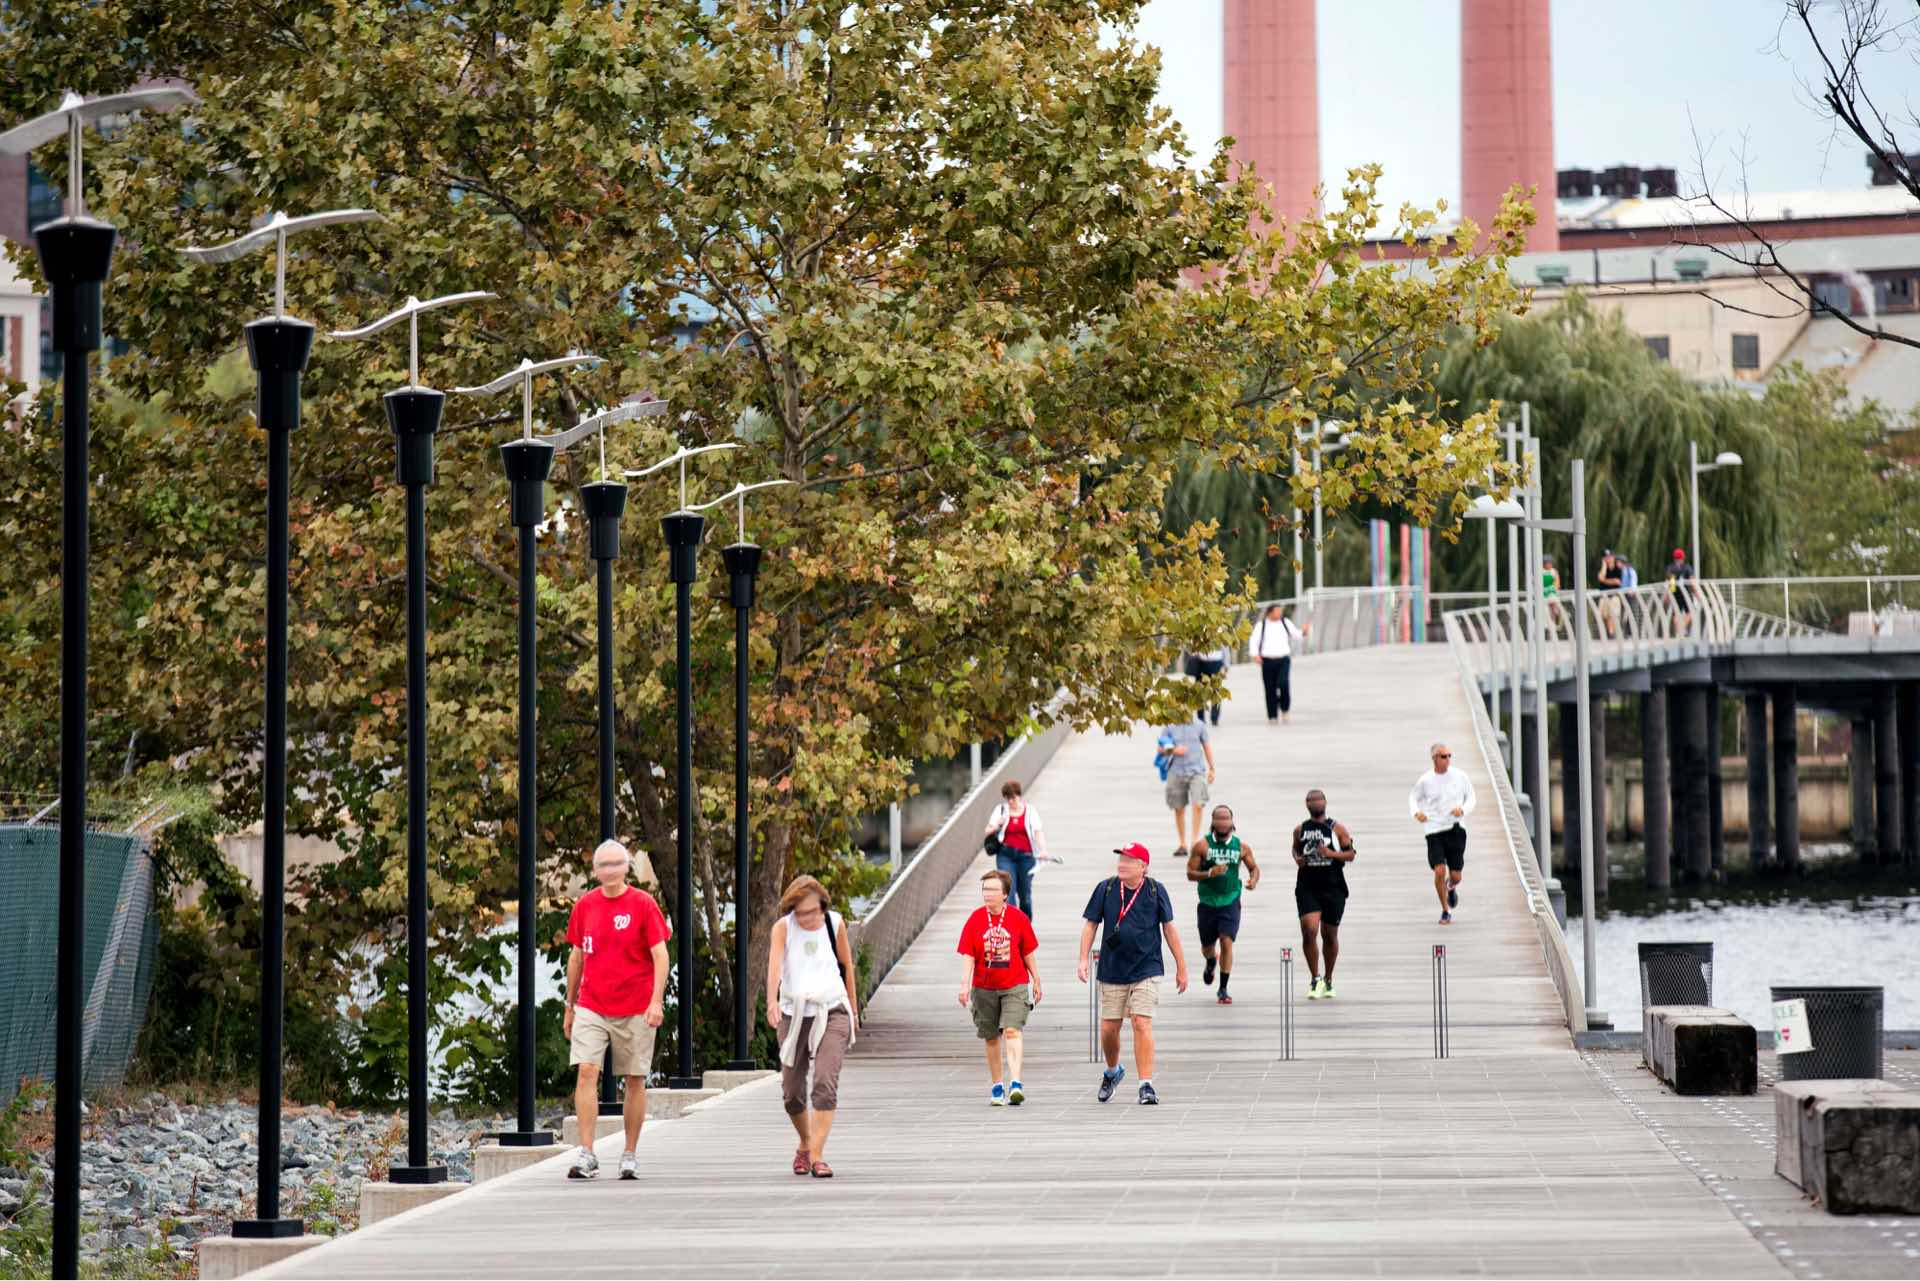 Spend your time outside along the waterfront at The Yards park.